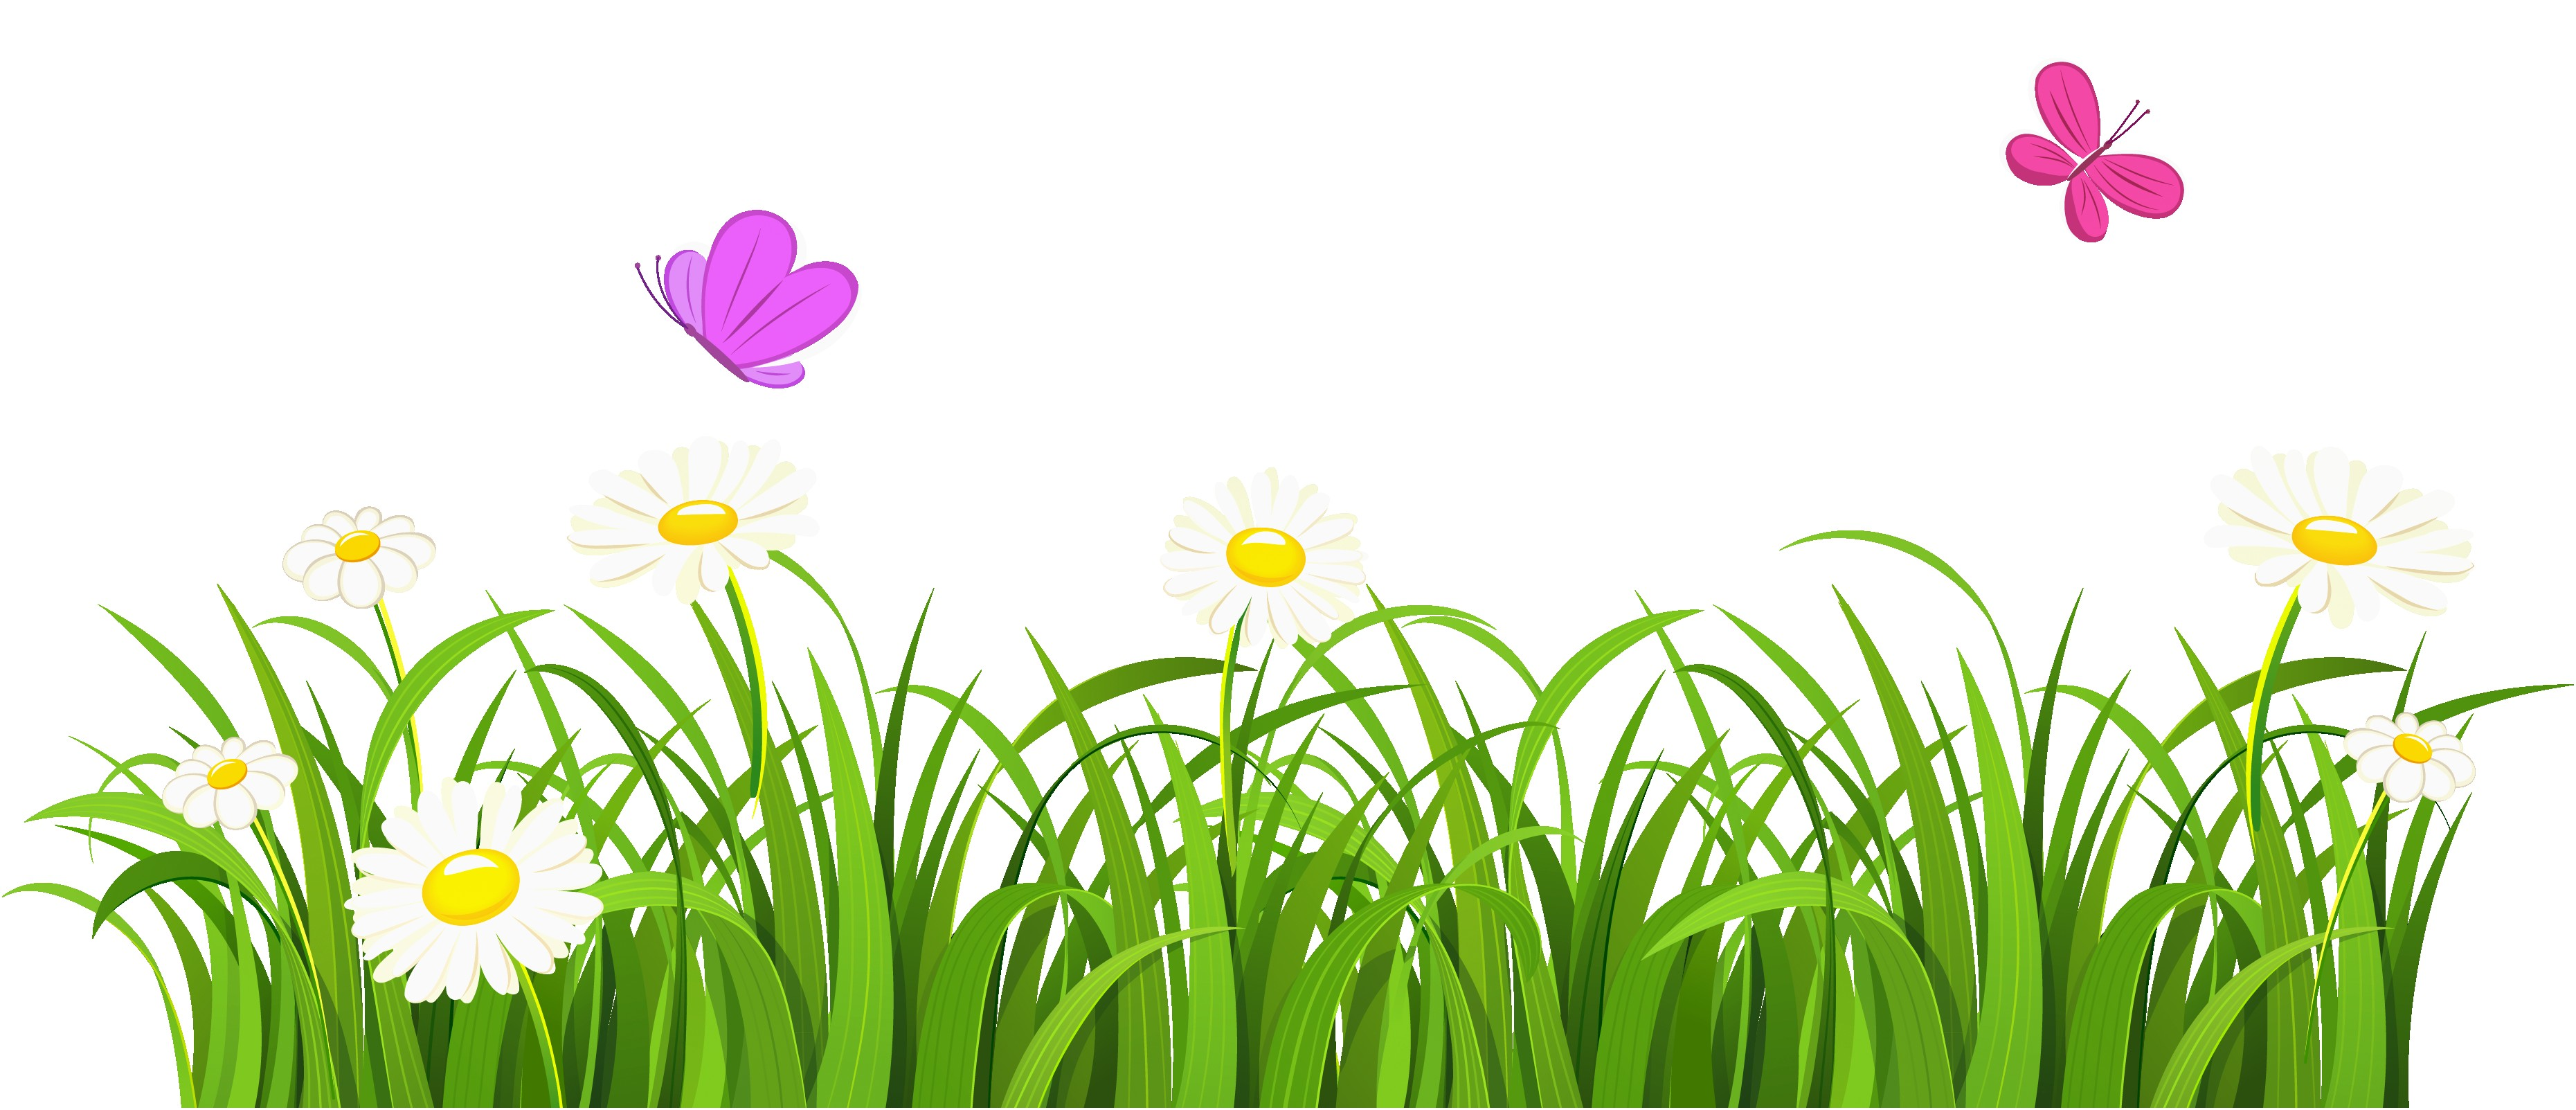 Spring clipart nature. Beautiful clip art for